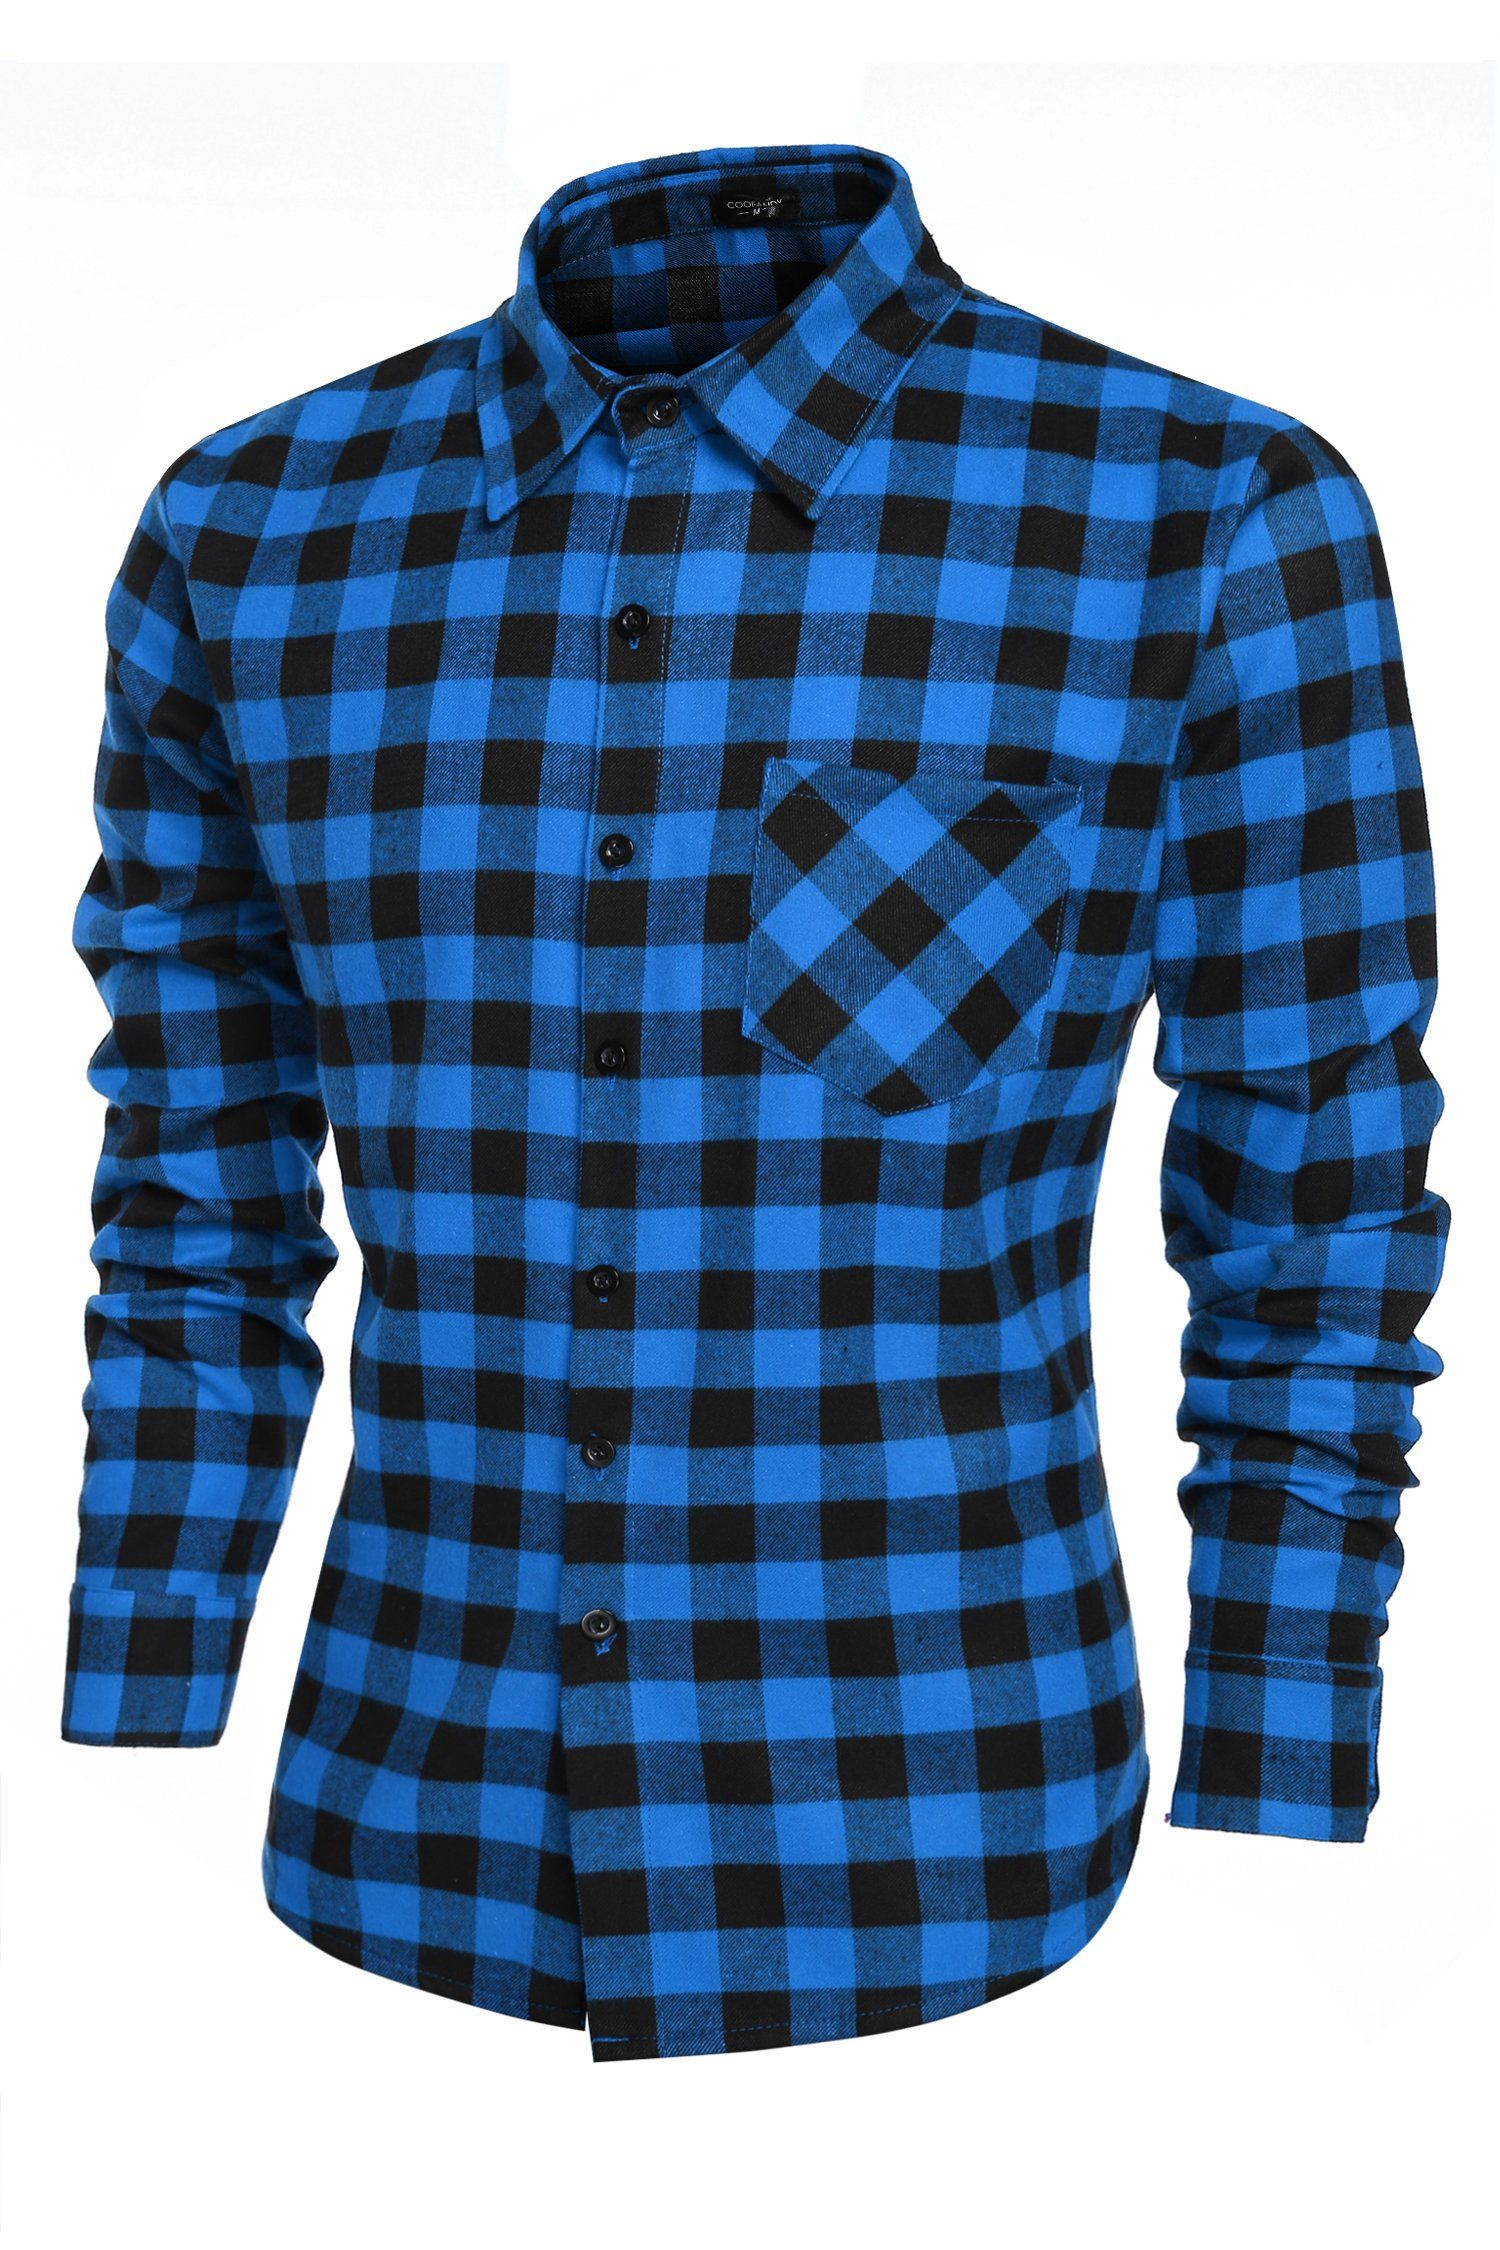 Mens Casual Plaid Long Sleeve Shirt